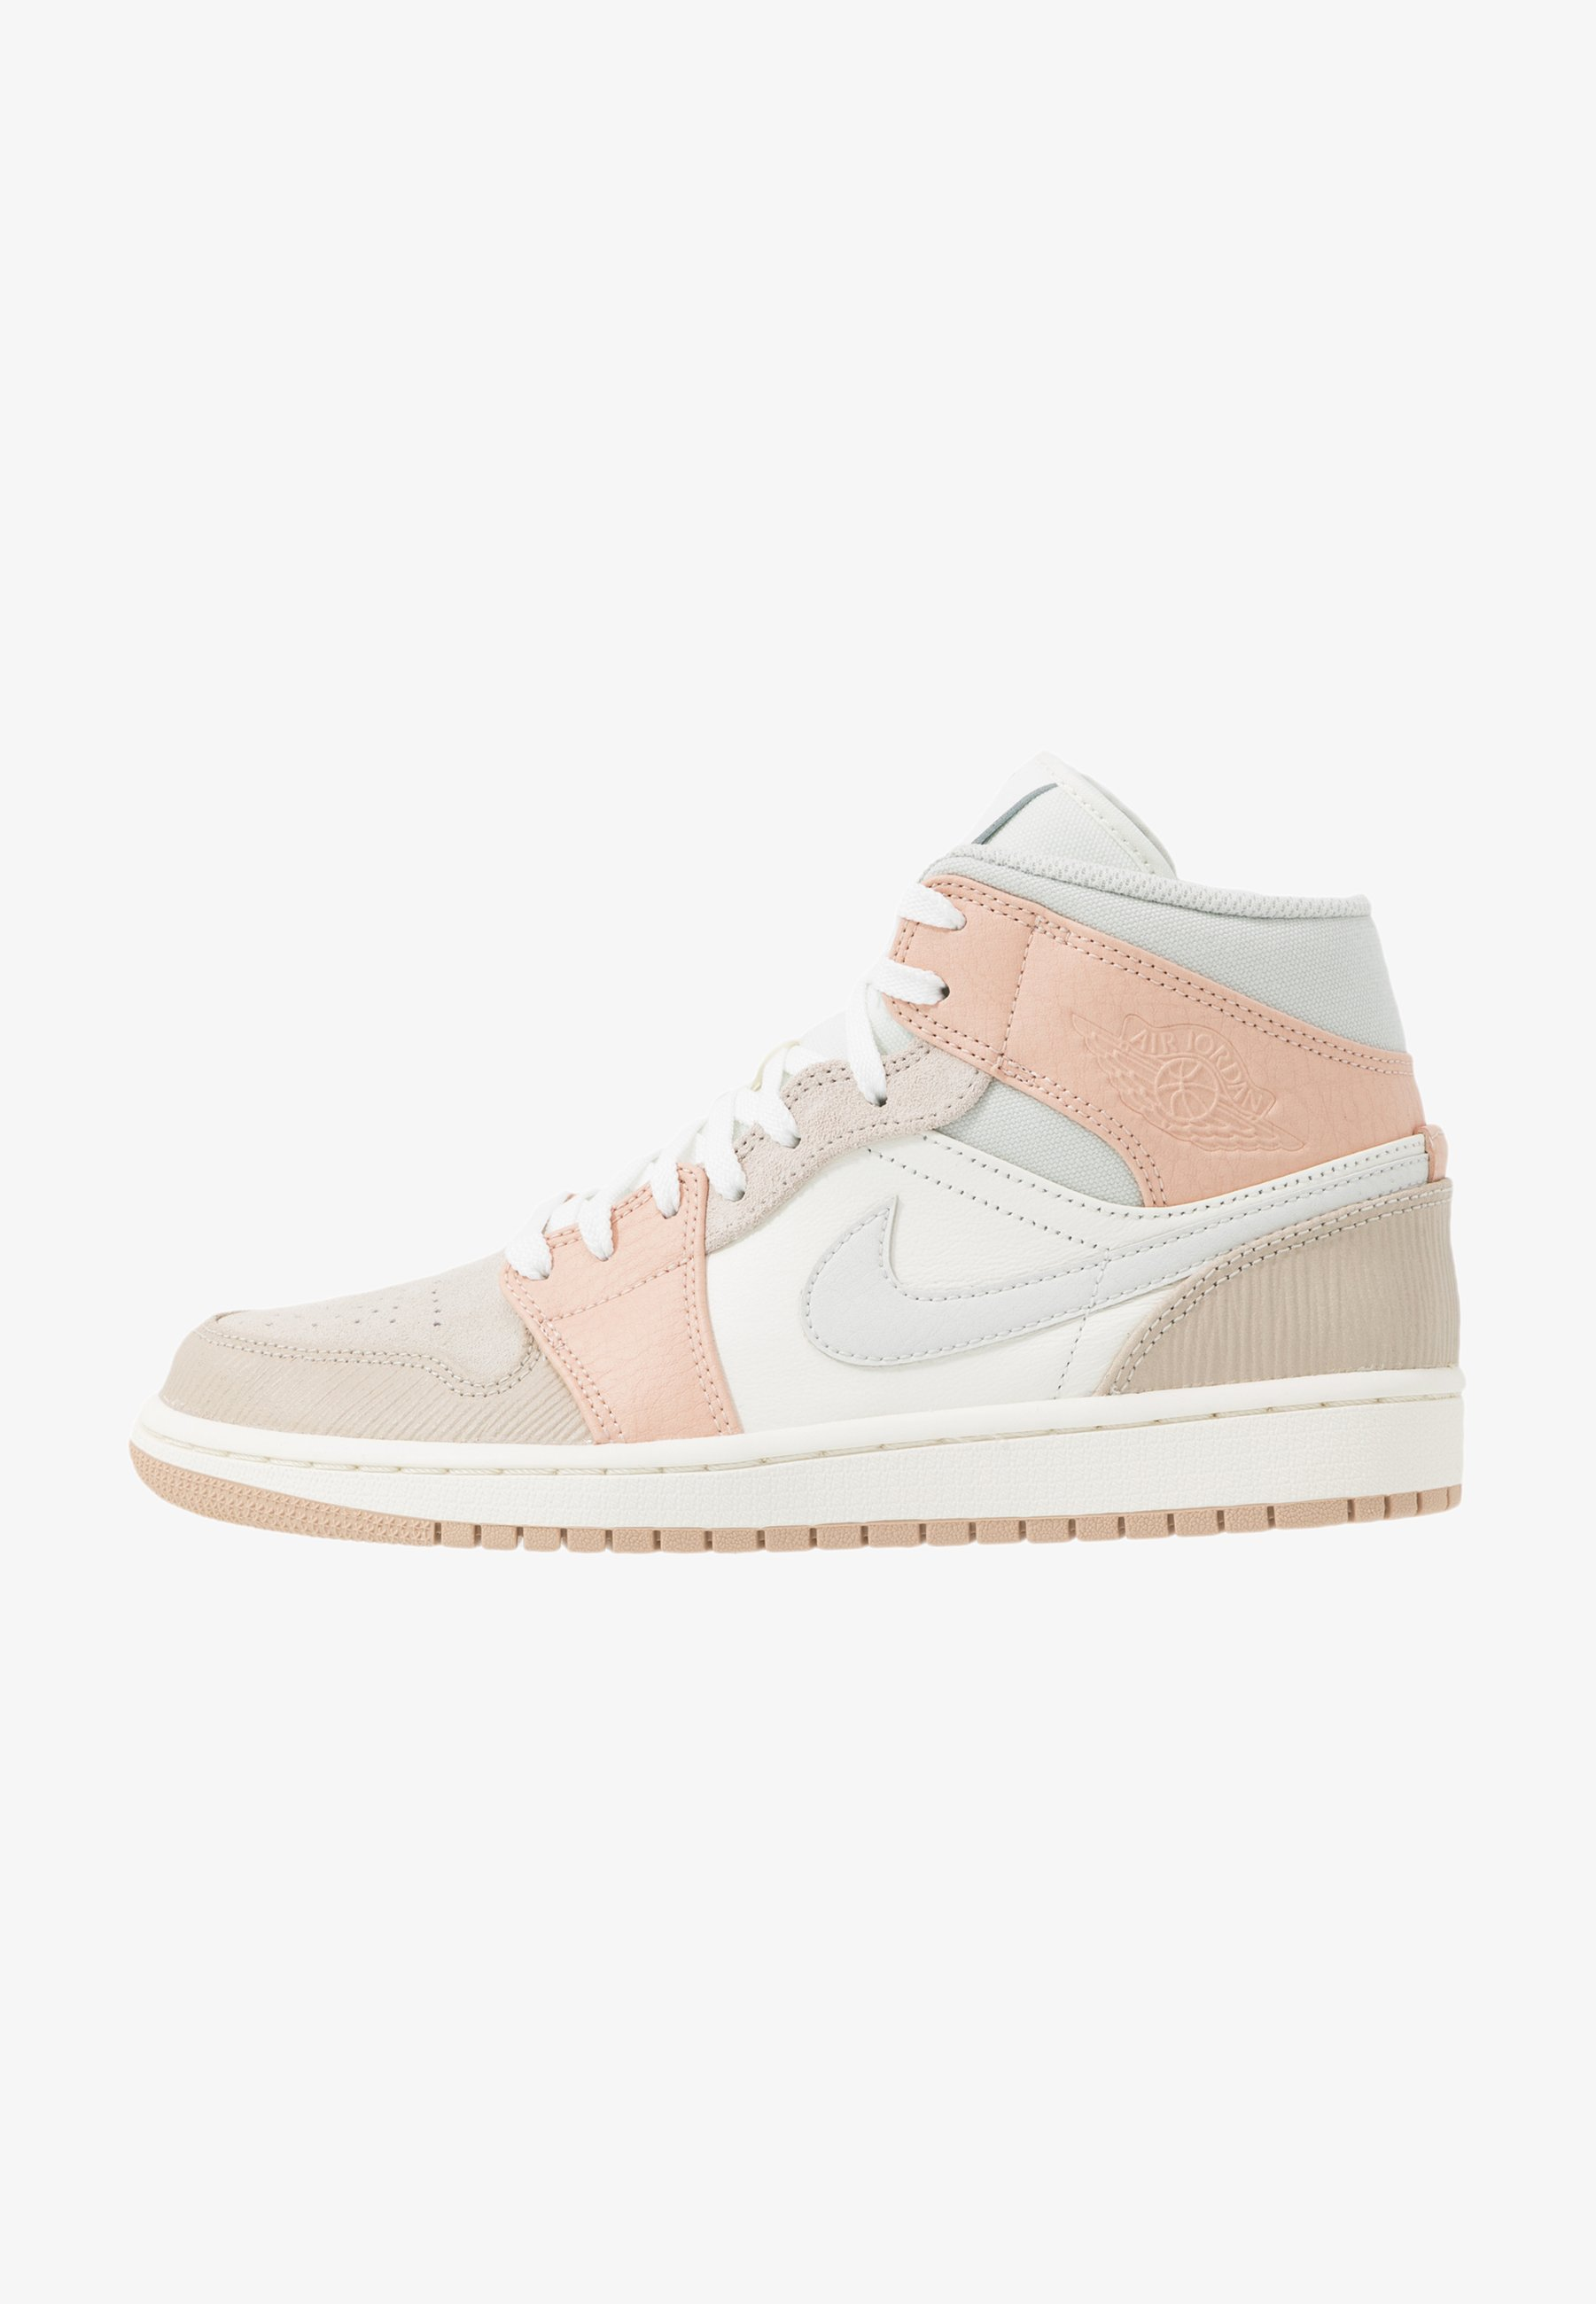 Jordan Air Jordan 1 Mid Zapatillas Altas Sail Light Bone String Shimmer Zalando Es